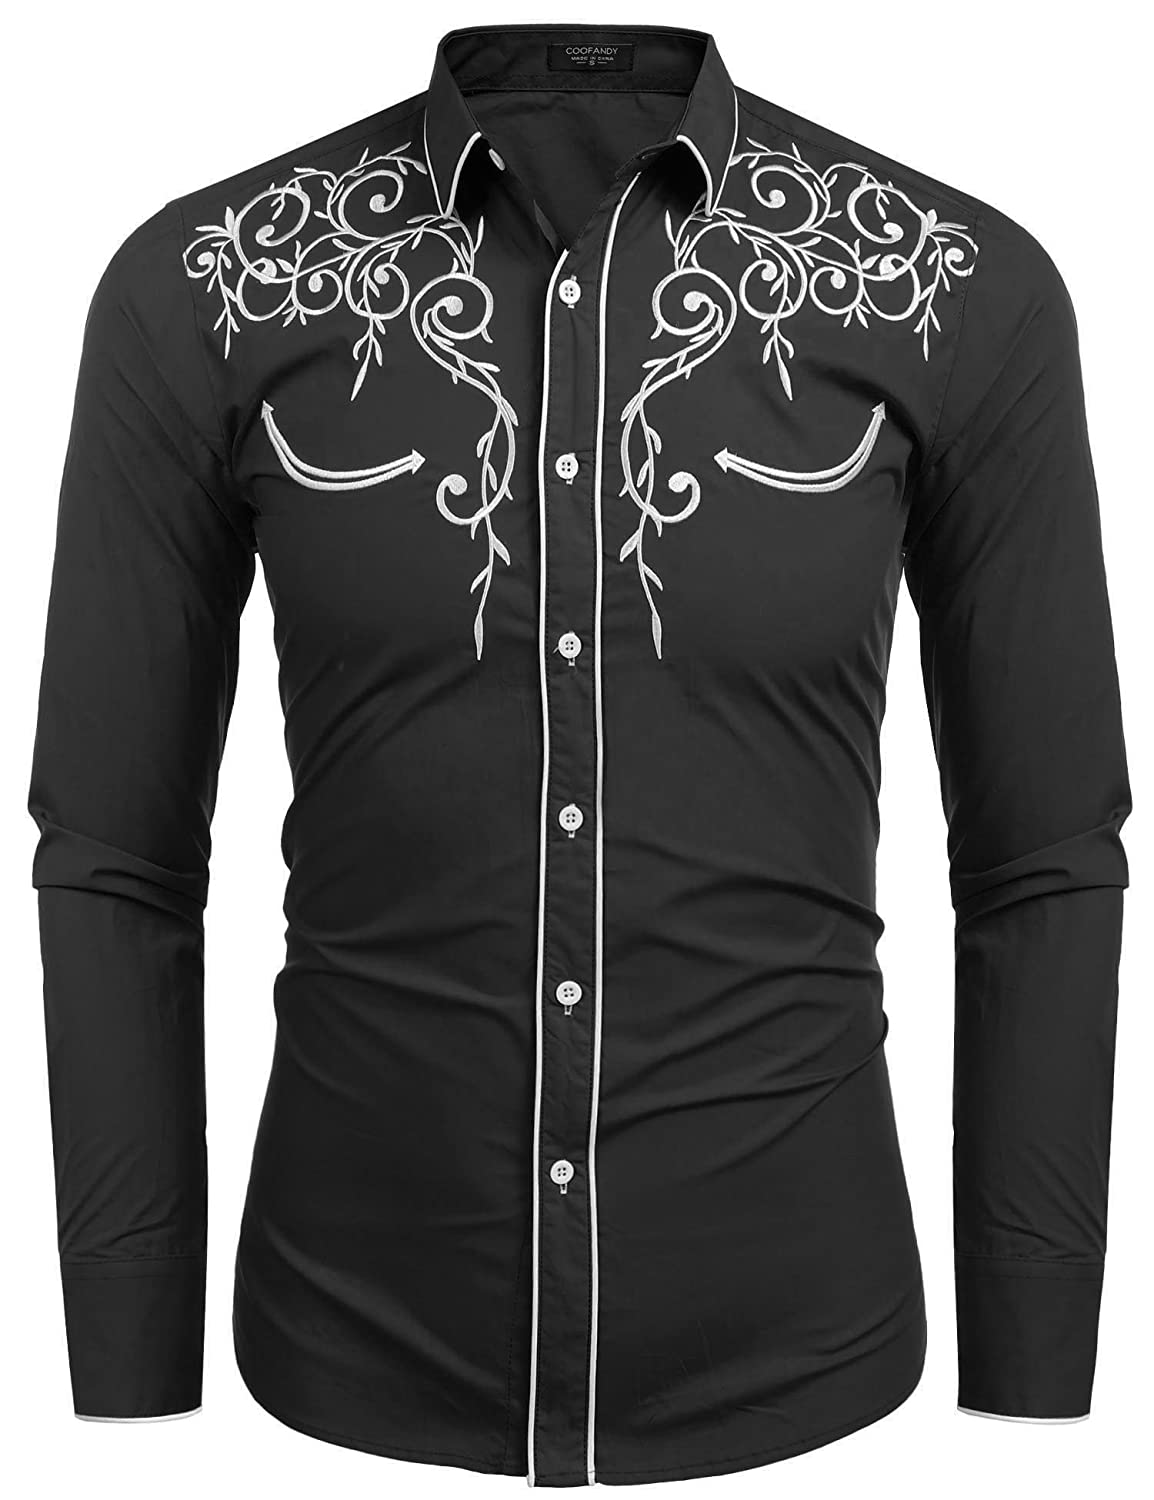 ce36c258 COOFANDY Men's Long Sleeve Embroidered Shirt Slim Fit Casual Button Down  Shirts at Amazon Men's Clothing store: